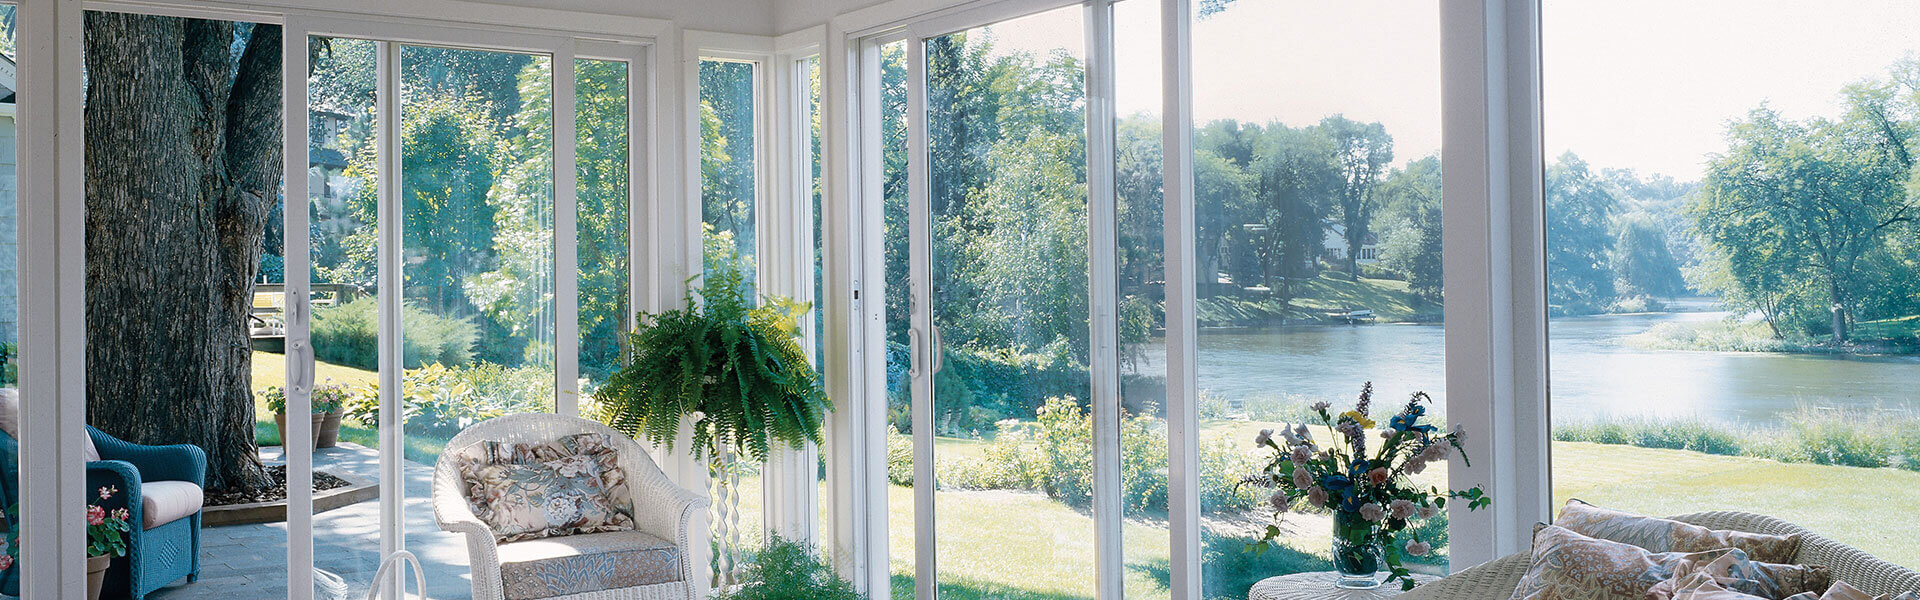 double hung home windows